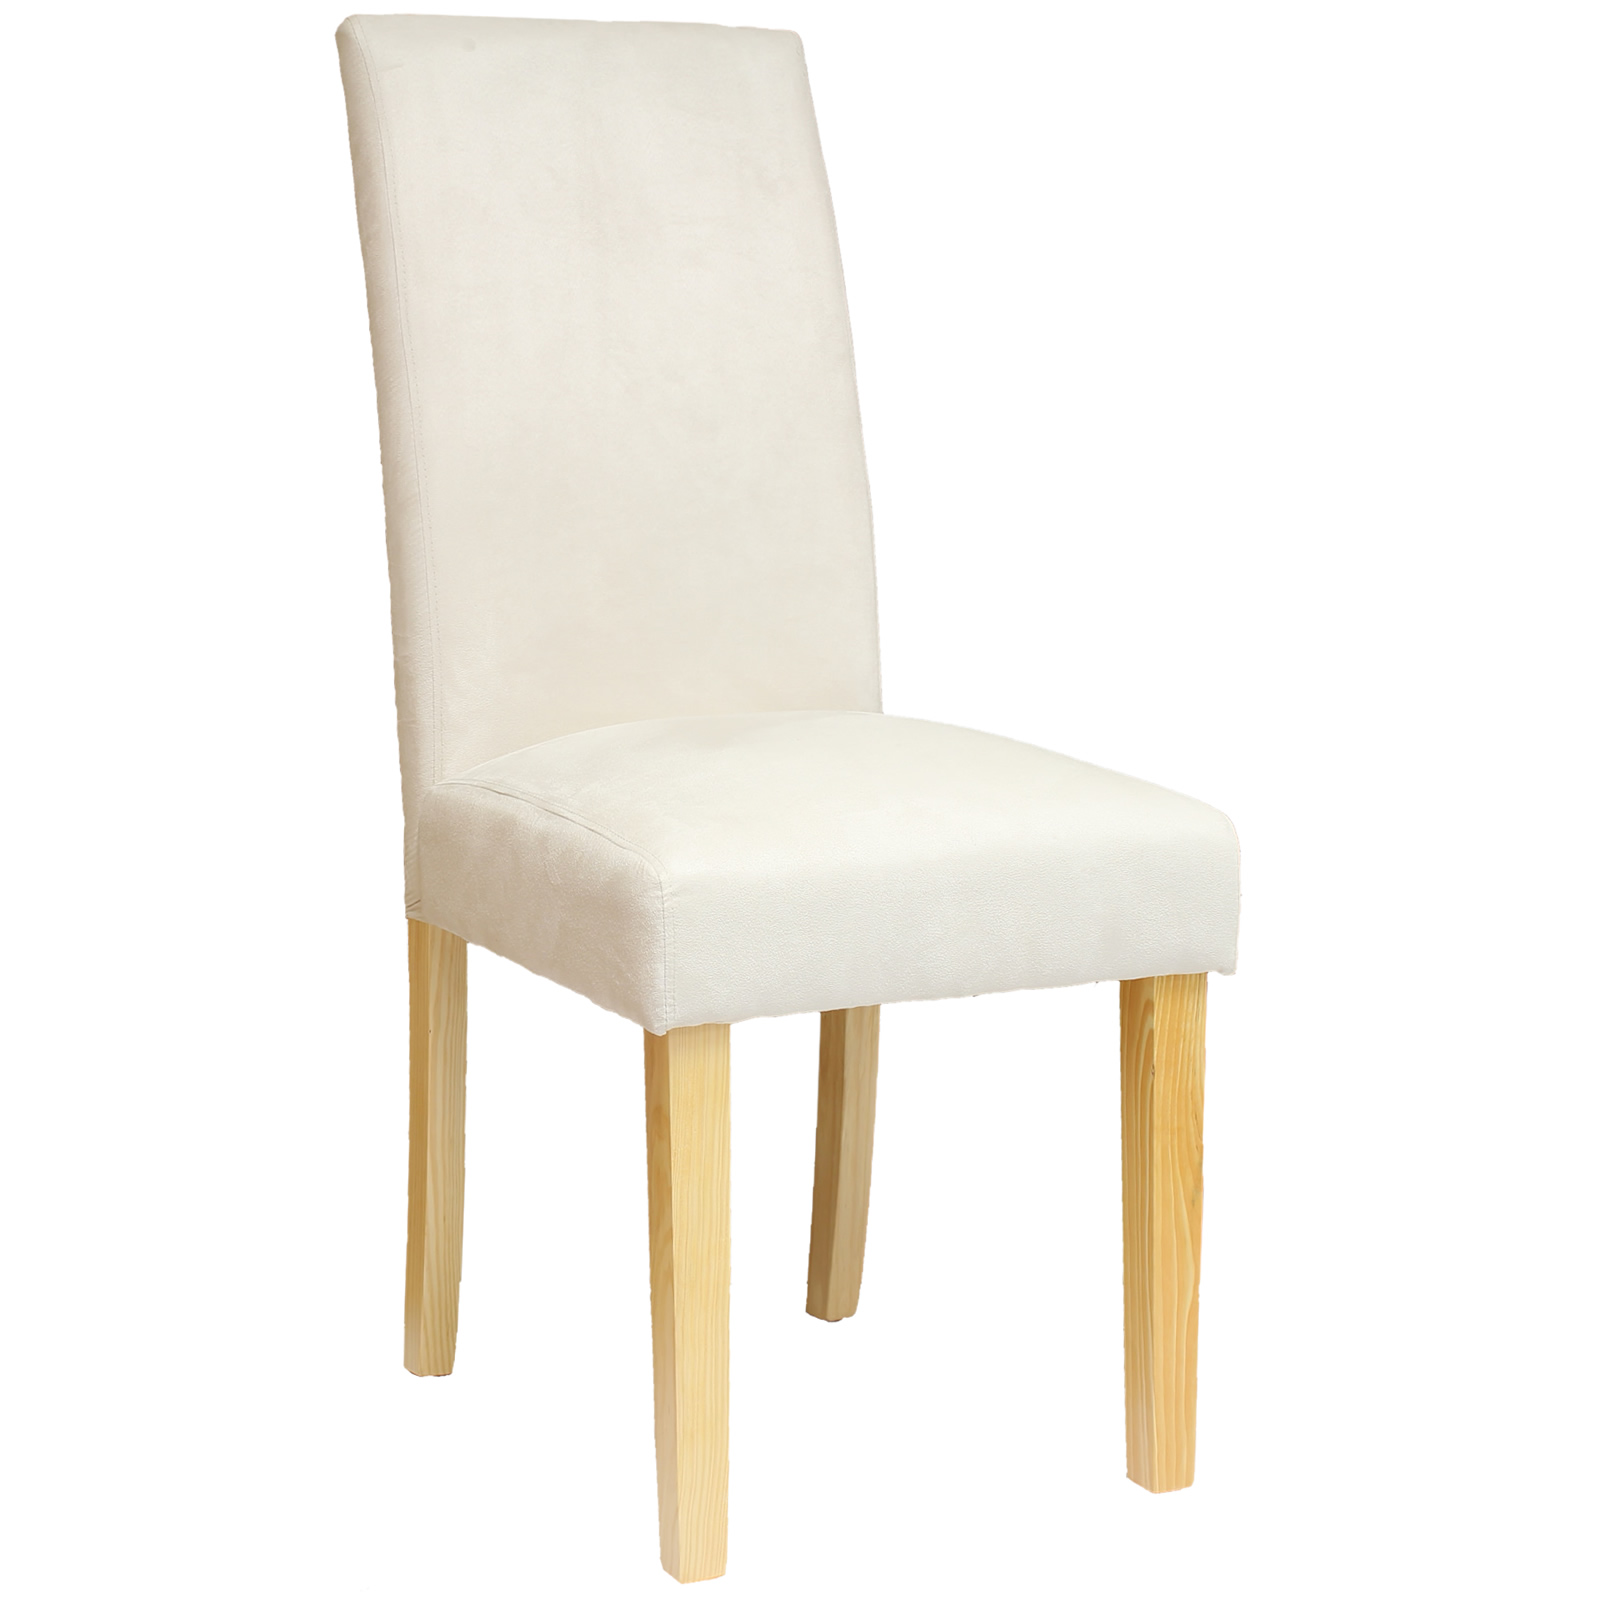 chair fabric material vanity chairs with backs 2 4 6 8 cream faux suede dining wooden oak